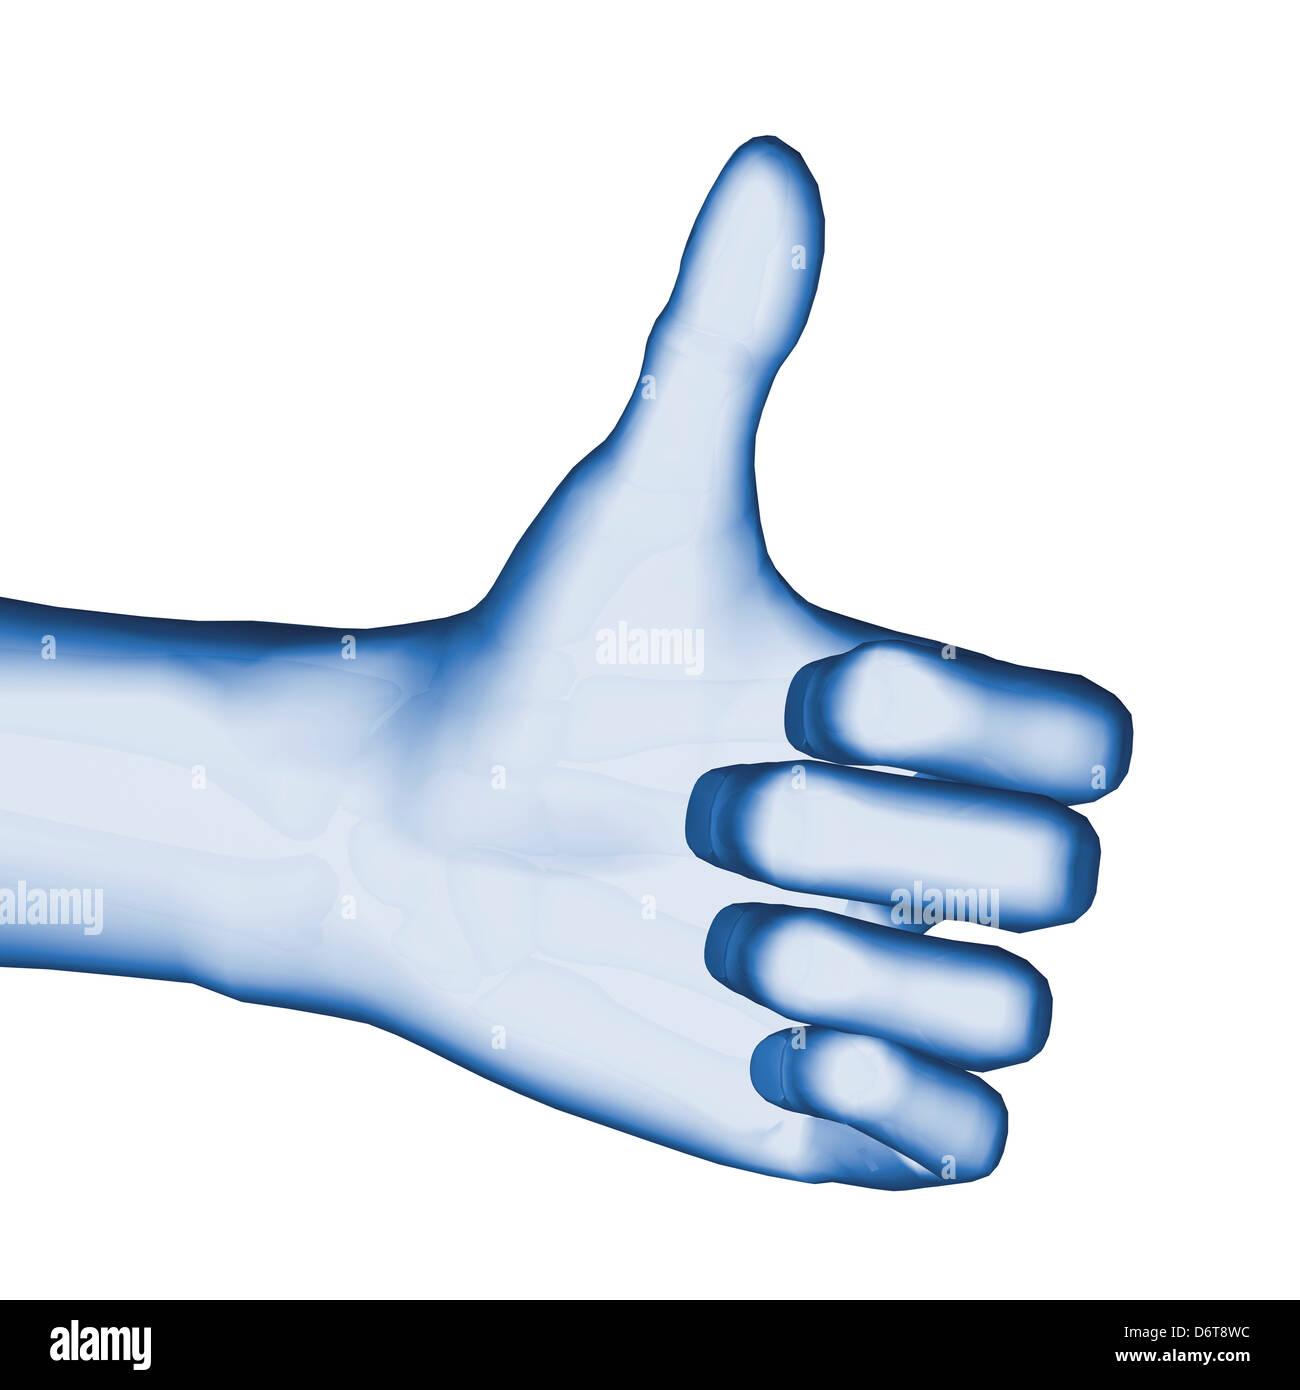 3D Computer Illustration of blue hand giving thumbs up sign - Stock Image